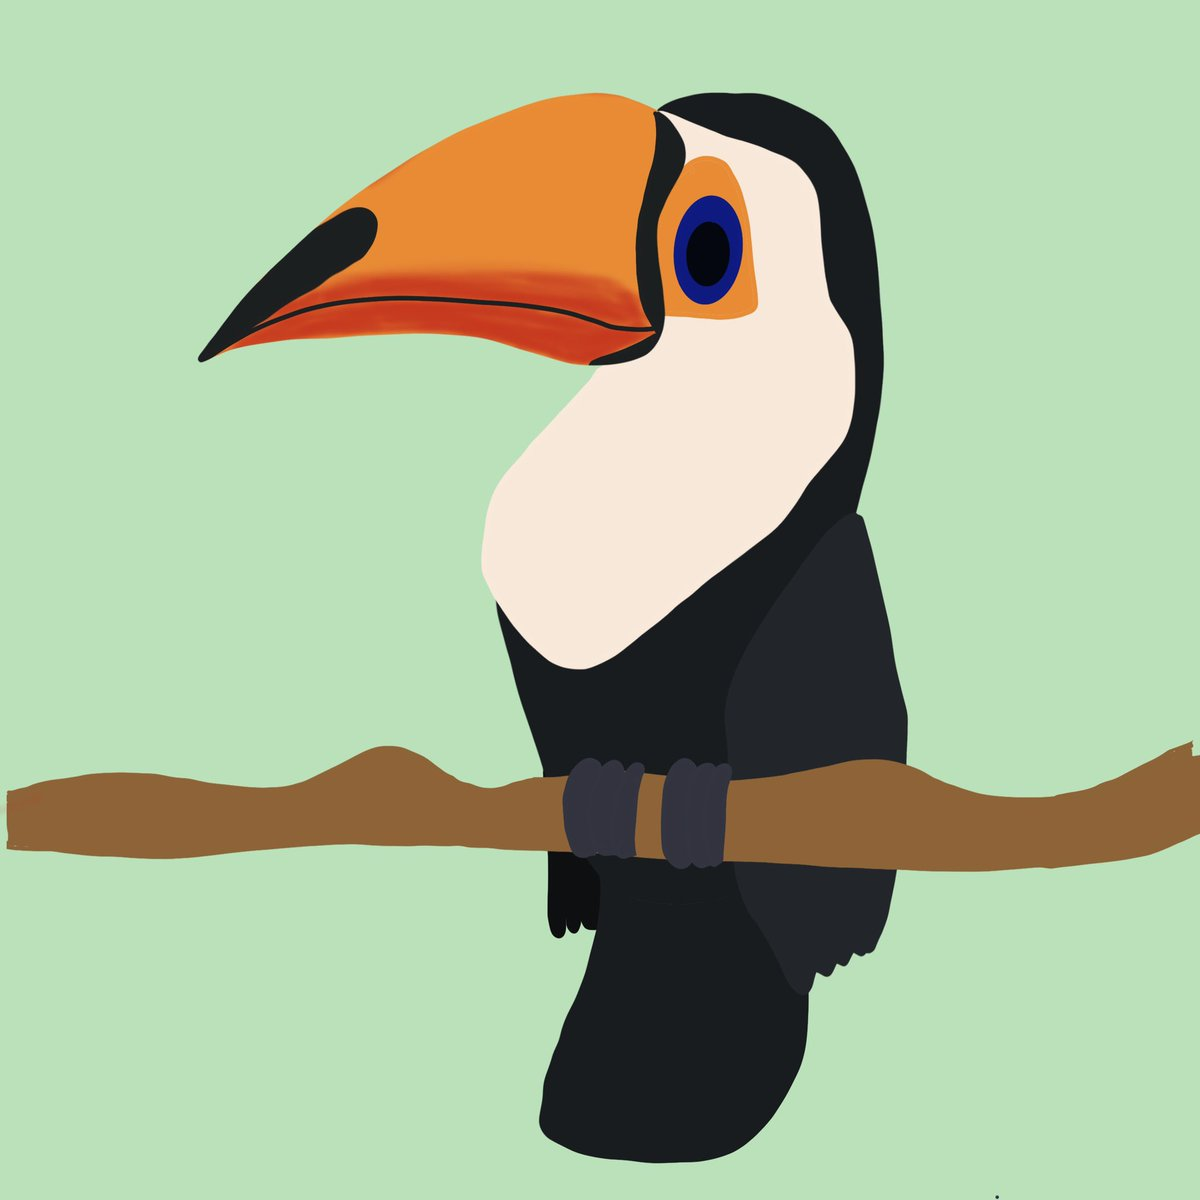 #Toucan - tropical American forest birds known for their large and strikingly coloured bills. #procreate #DigitalArtist pic.twitter.com/TjNZ9phOyo